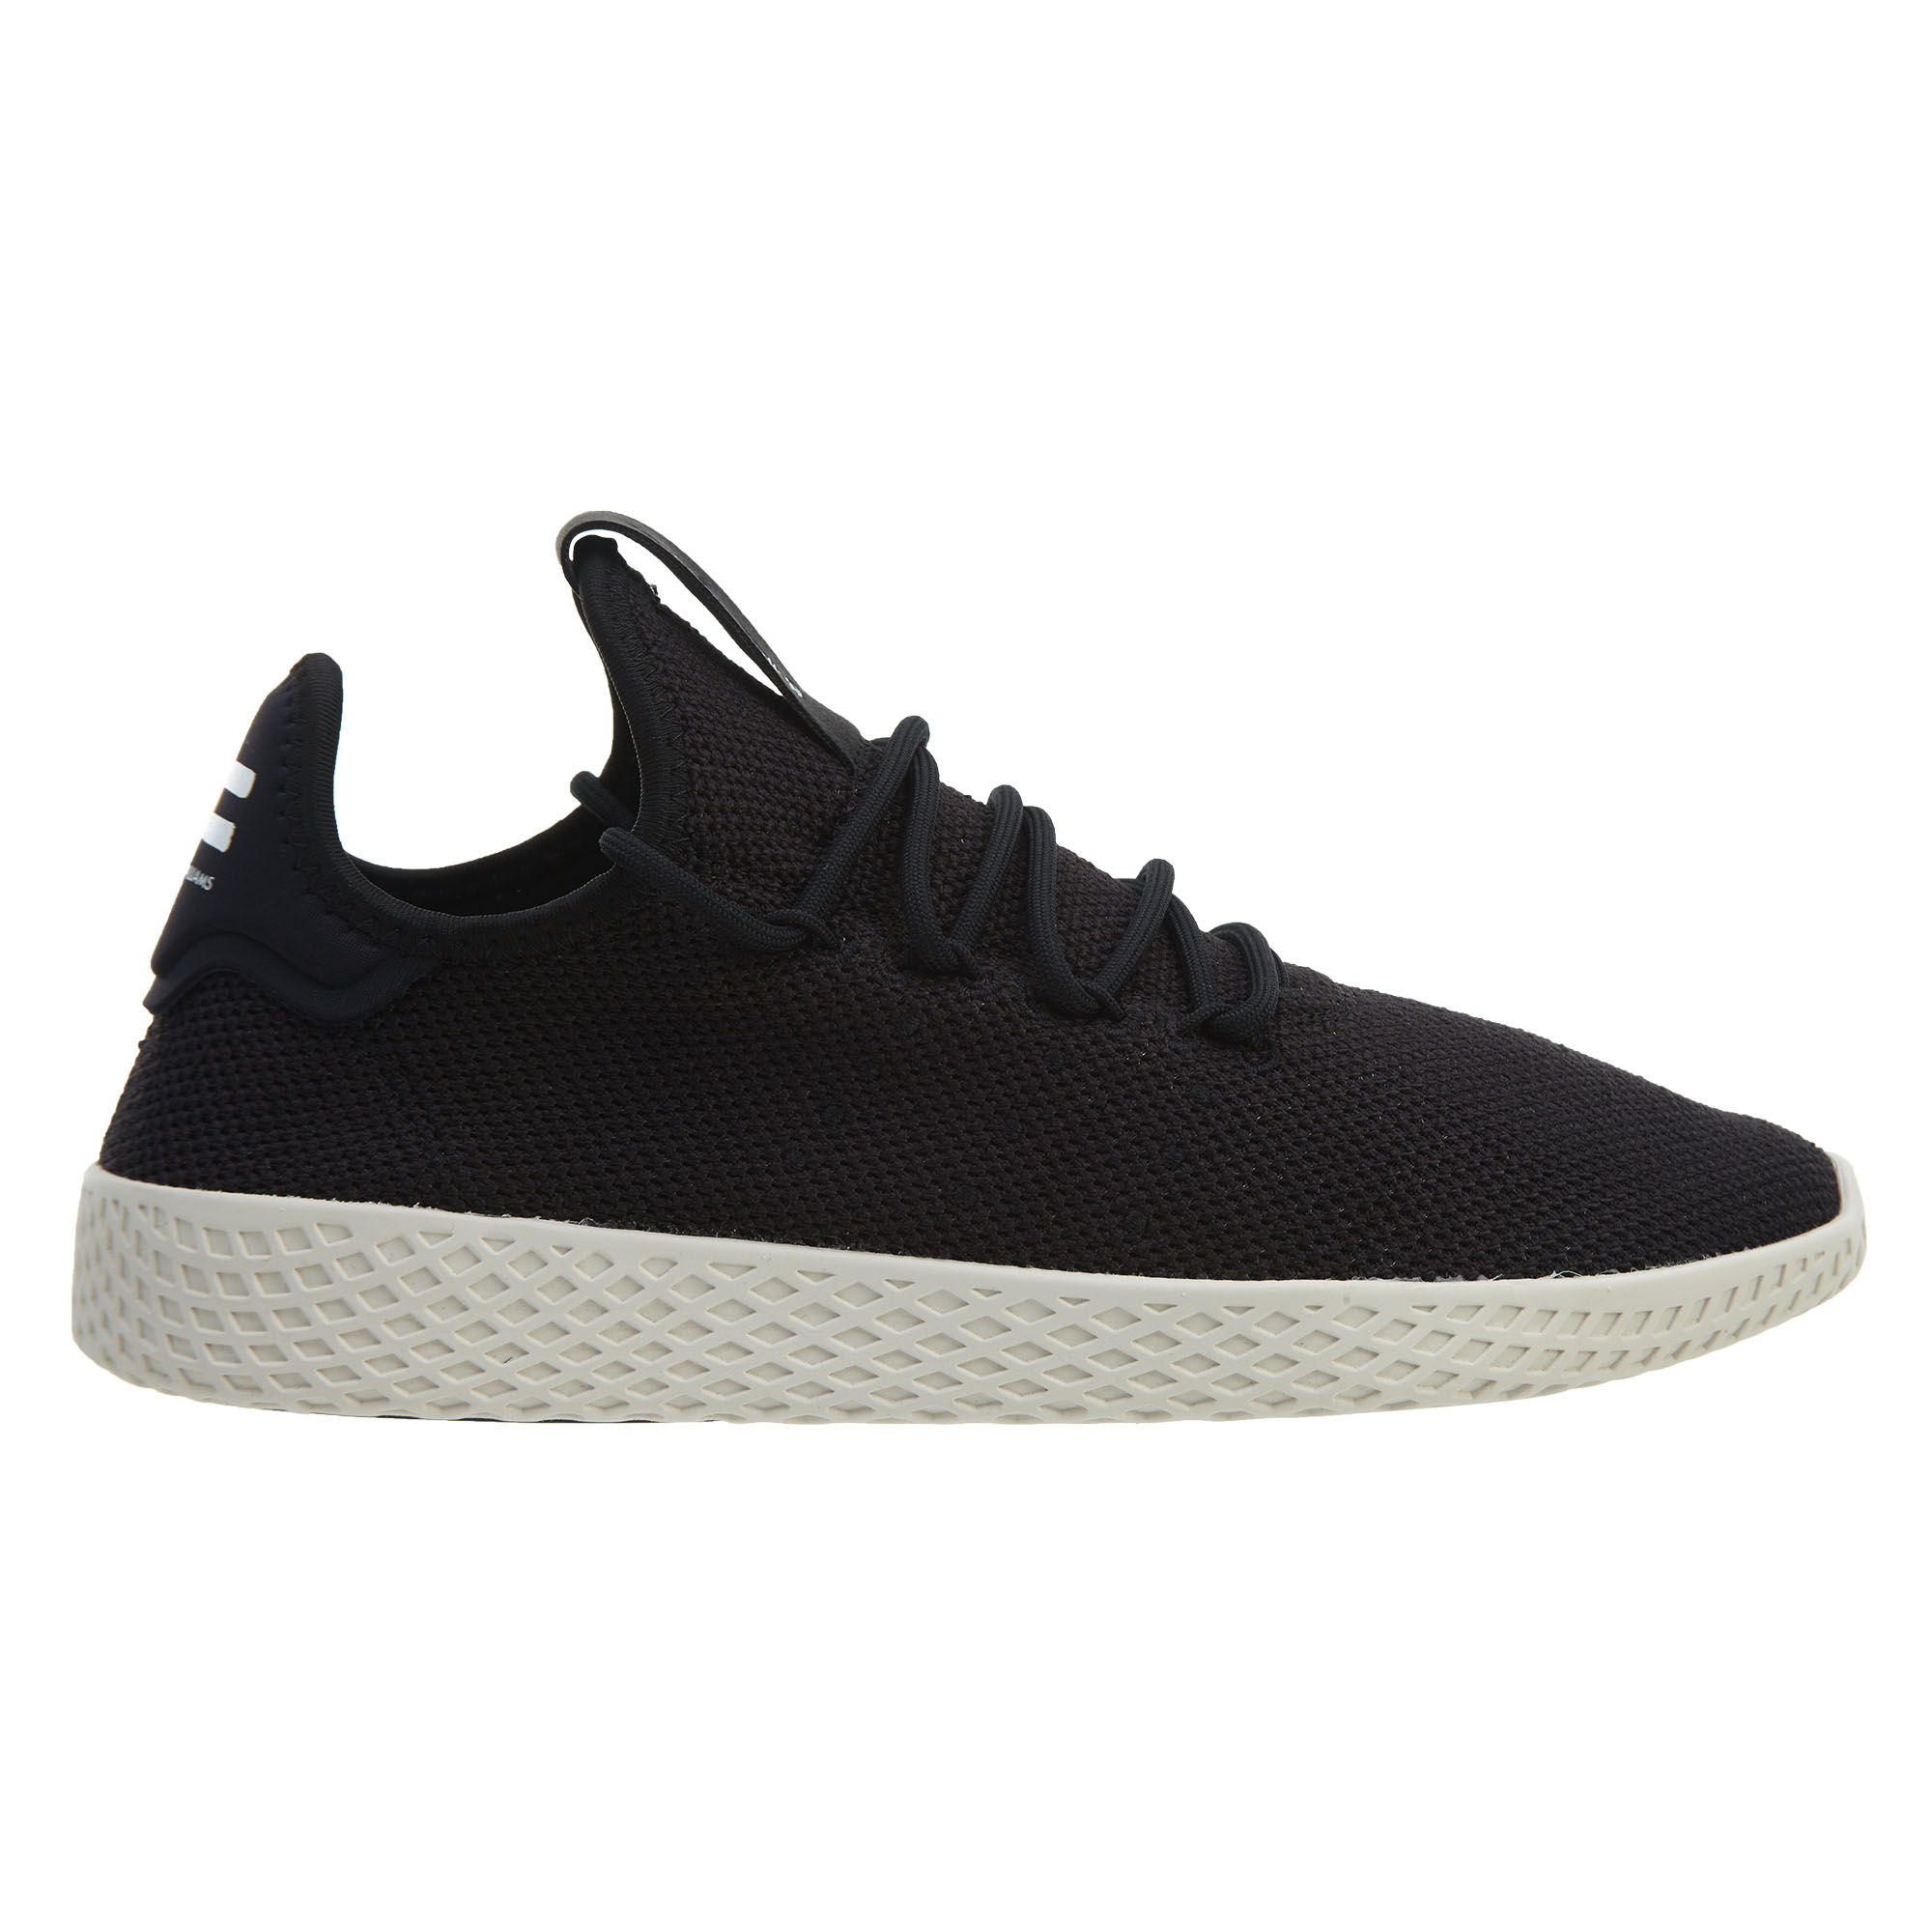 adidas Pw Tennis Hu Black Black-White